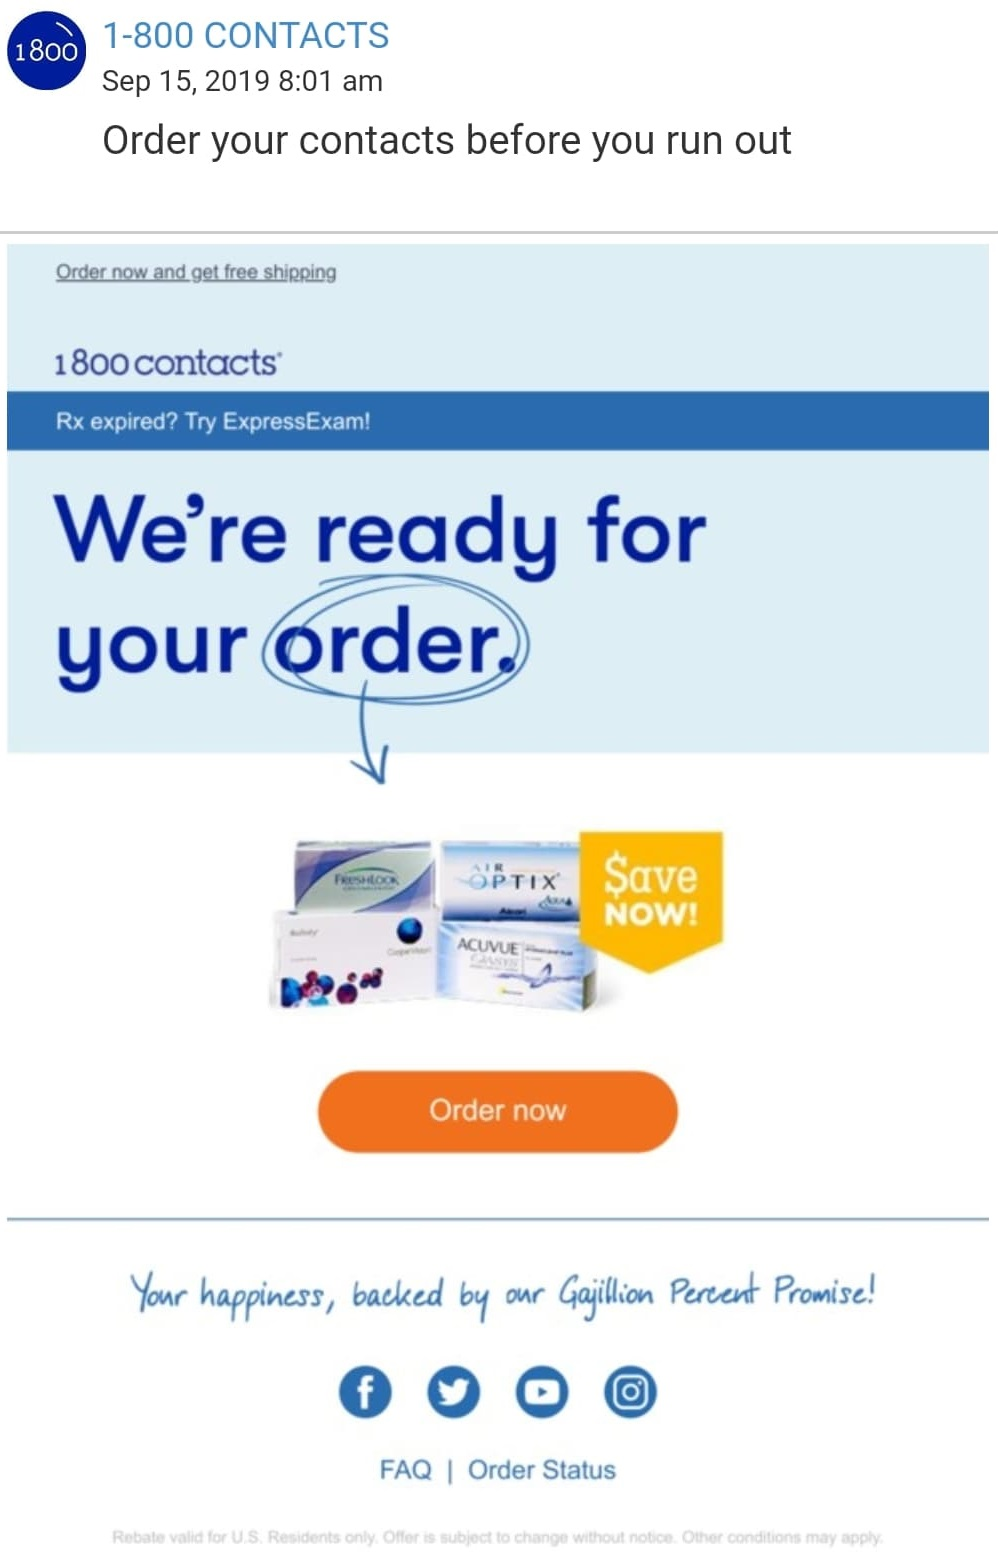 You can use automation and triggers in your email marketing for retail, just like this 1800-Contacts replenishment email does.